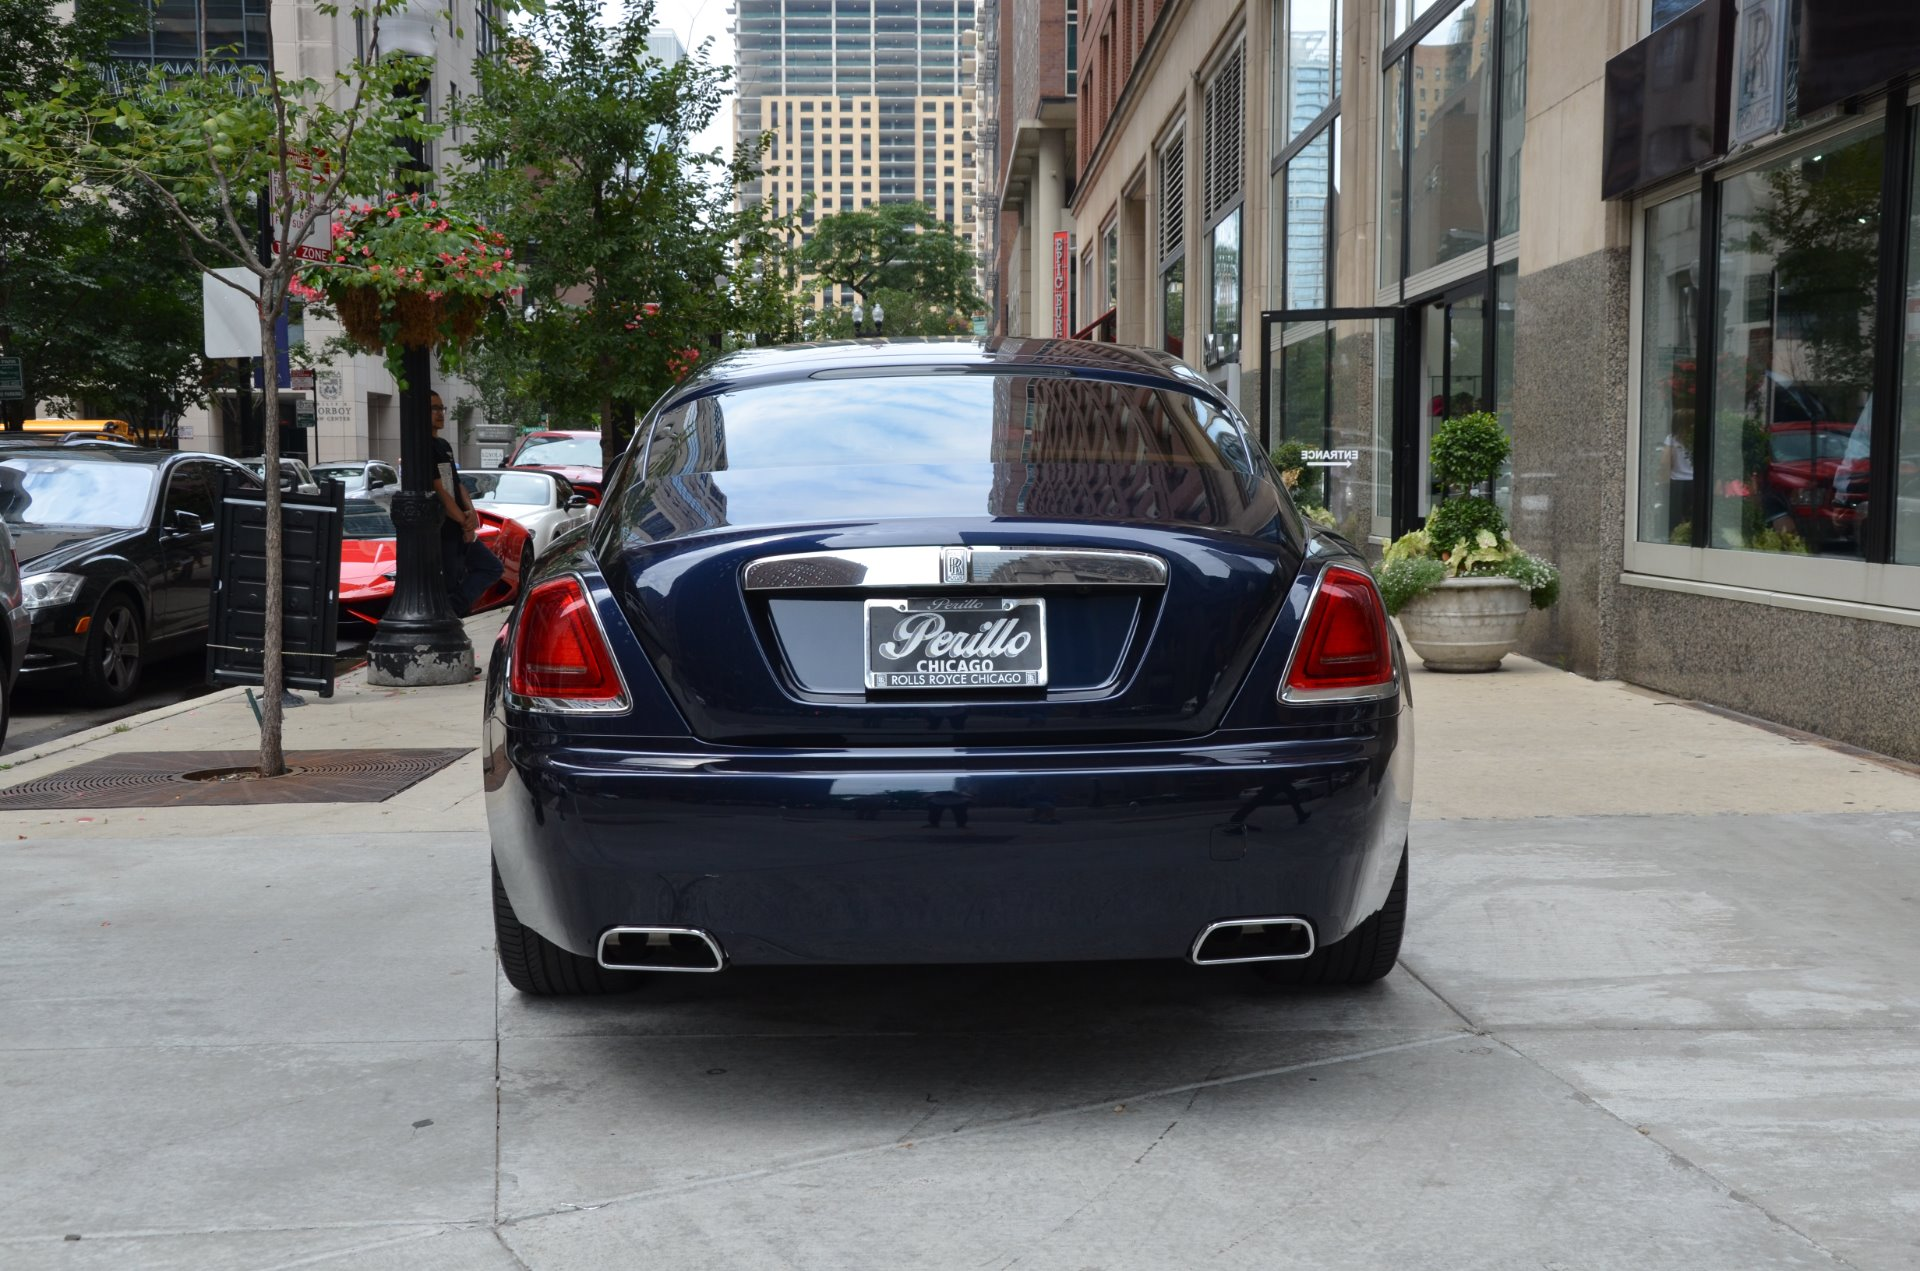 2014 rolls royce wraith stock r342a for sale near chicago il il rolls royce dealer. Black Bedroom Furniture Sets. Home Design Ideas